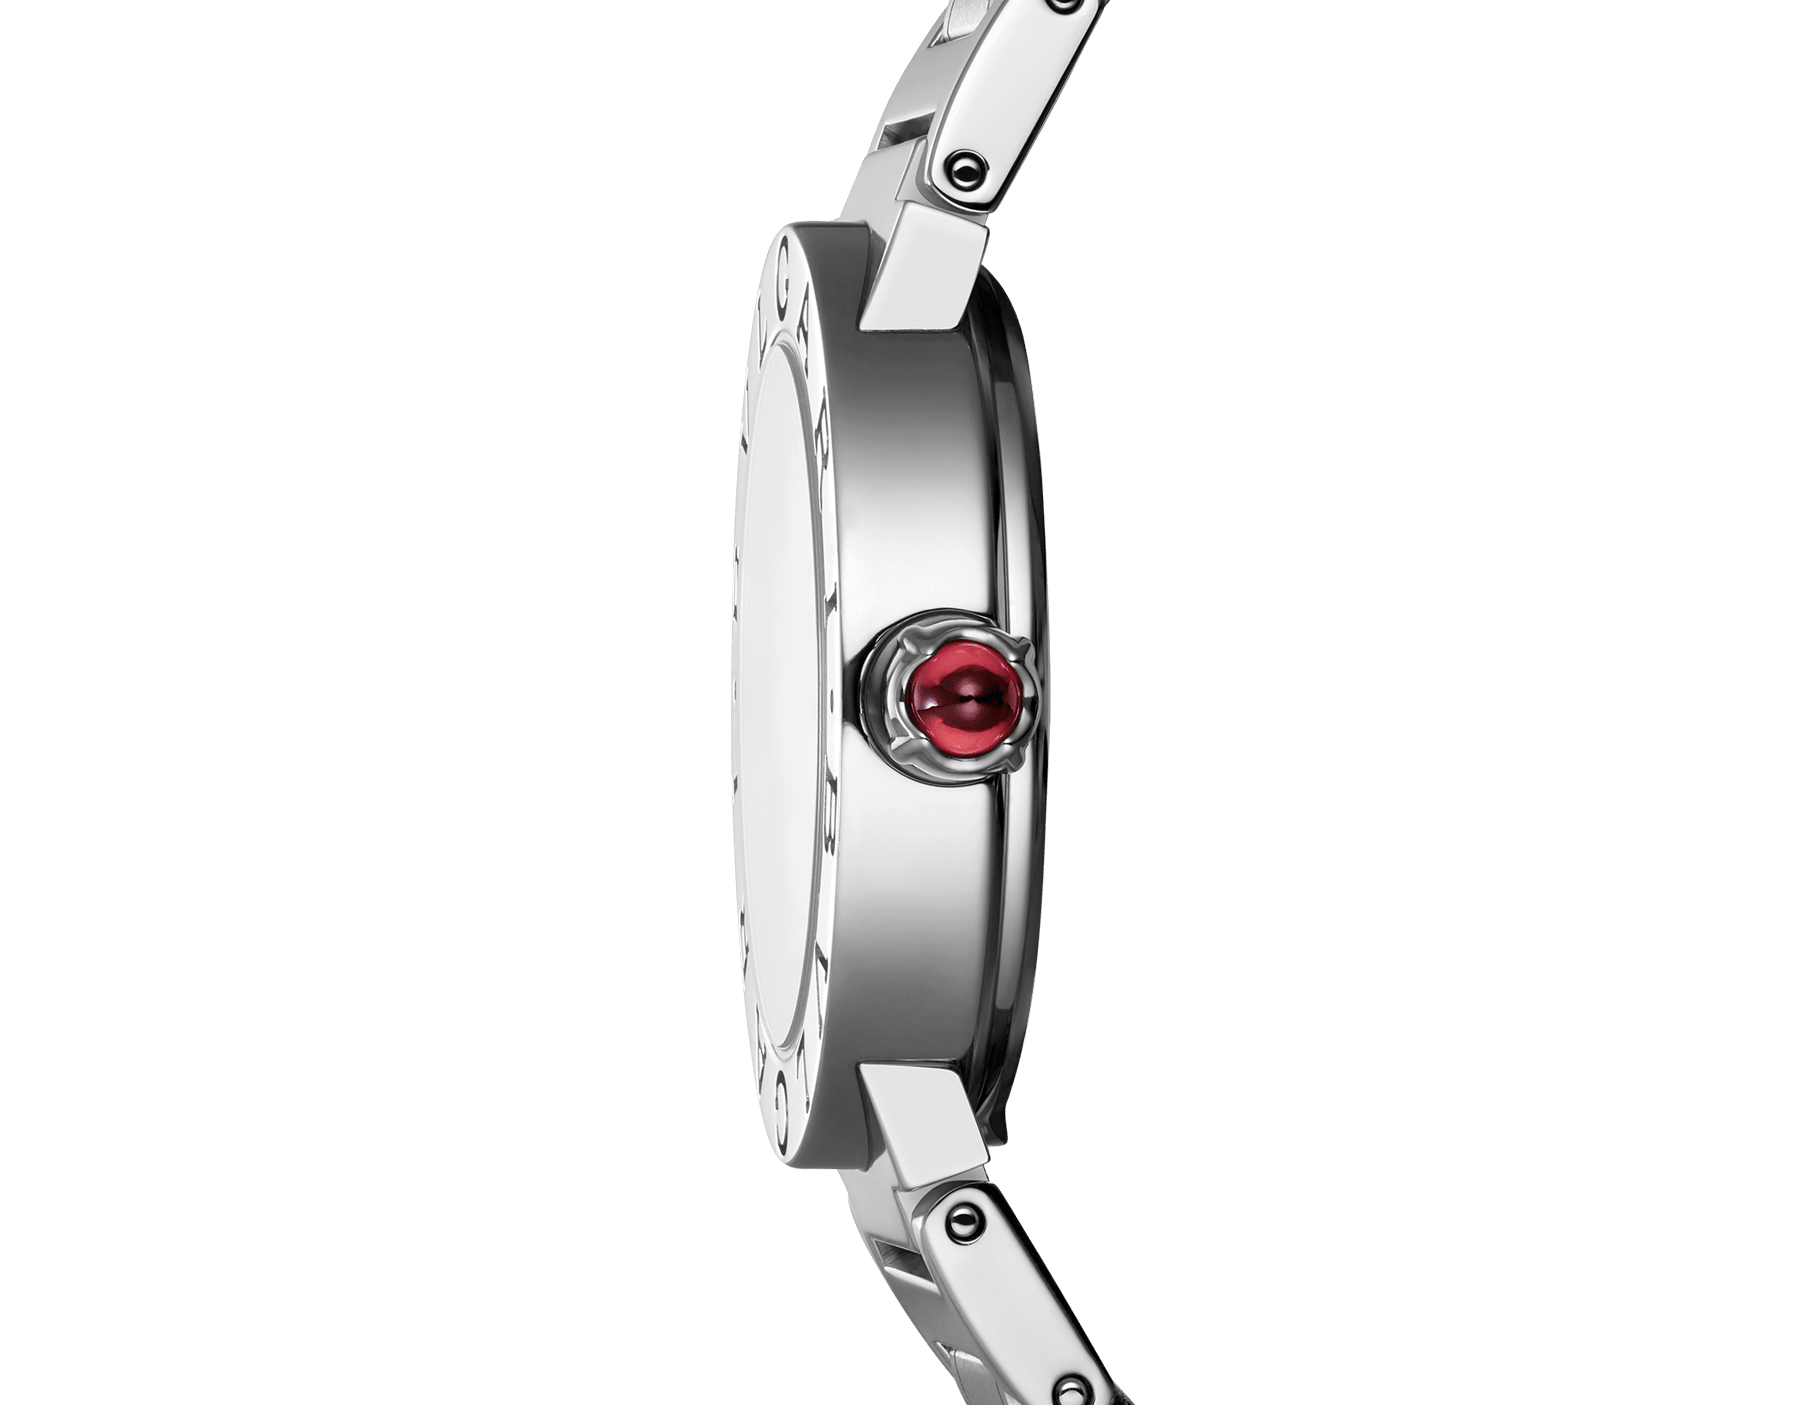 BVLGARI BVLGARI watch in stainless steel case and bracelet, with white mother-of-pearl dial and diamond indexes. Small model 101886 image 3